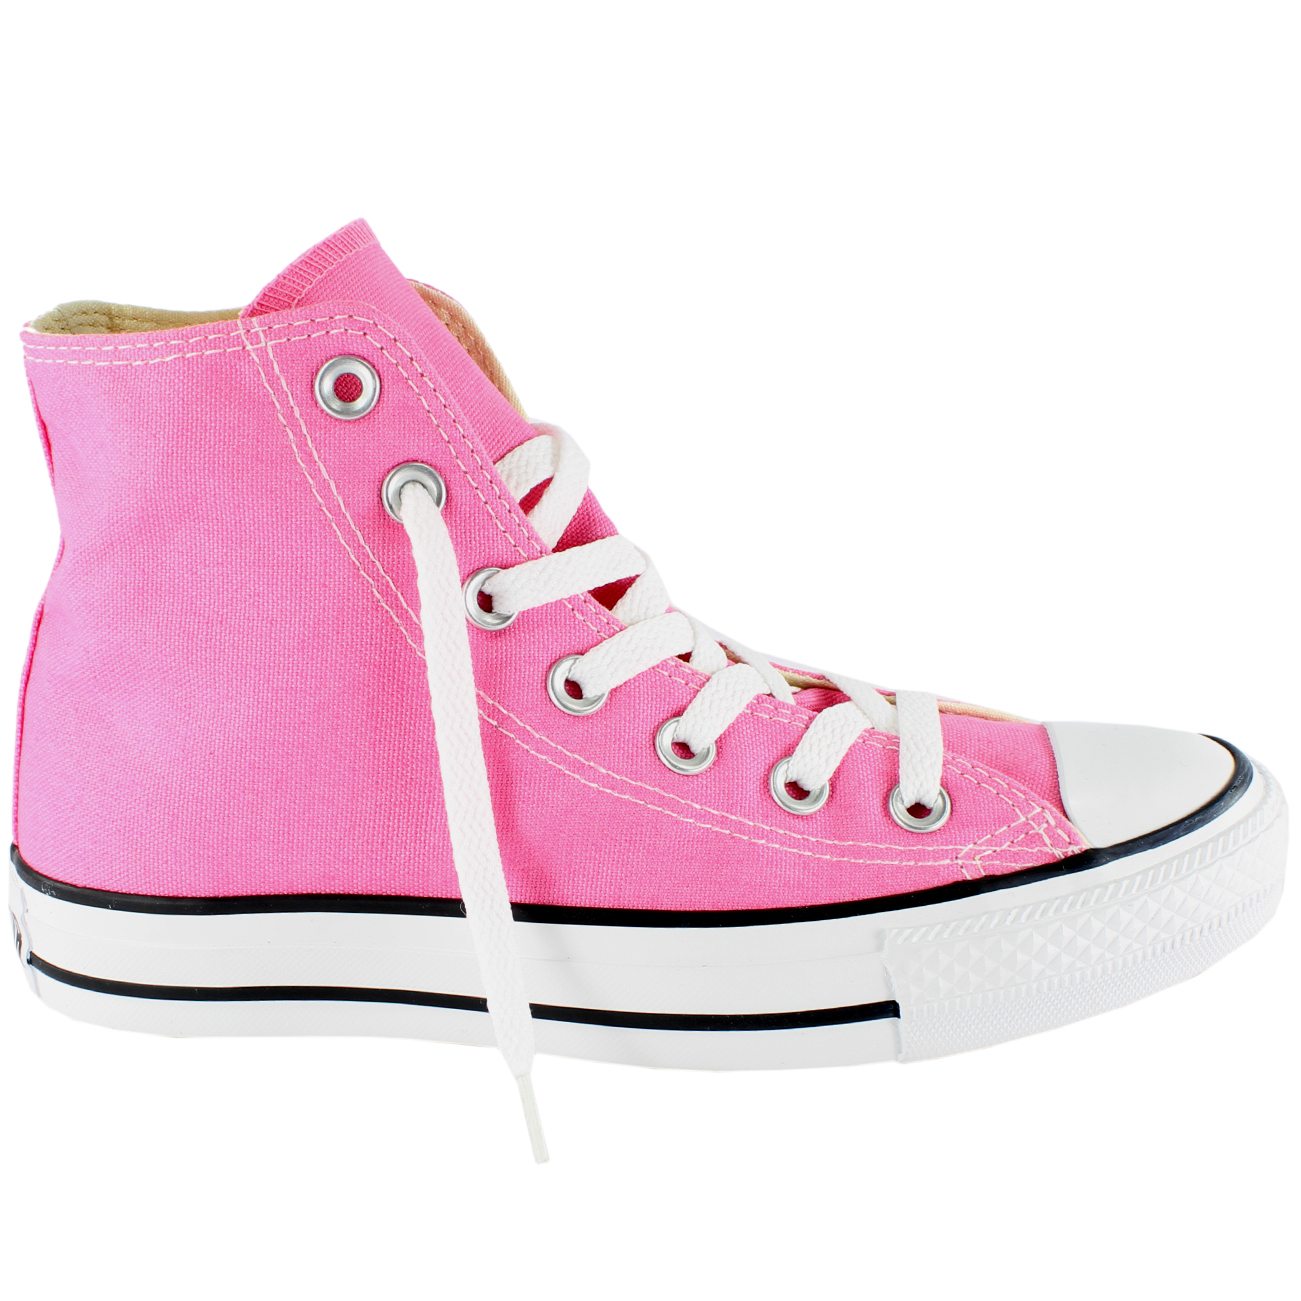 Womens Converse All Star Hi High Top Chuck Taylor Chucks